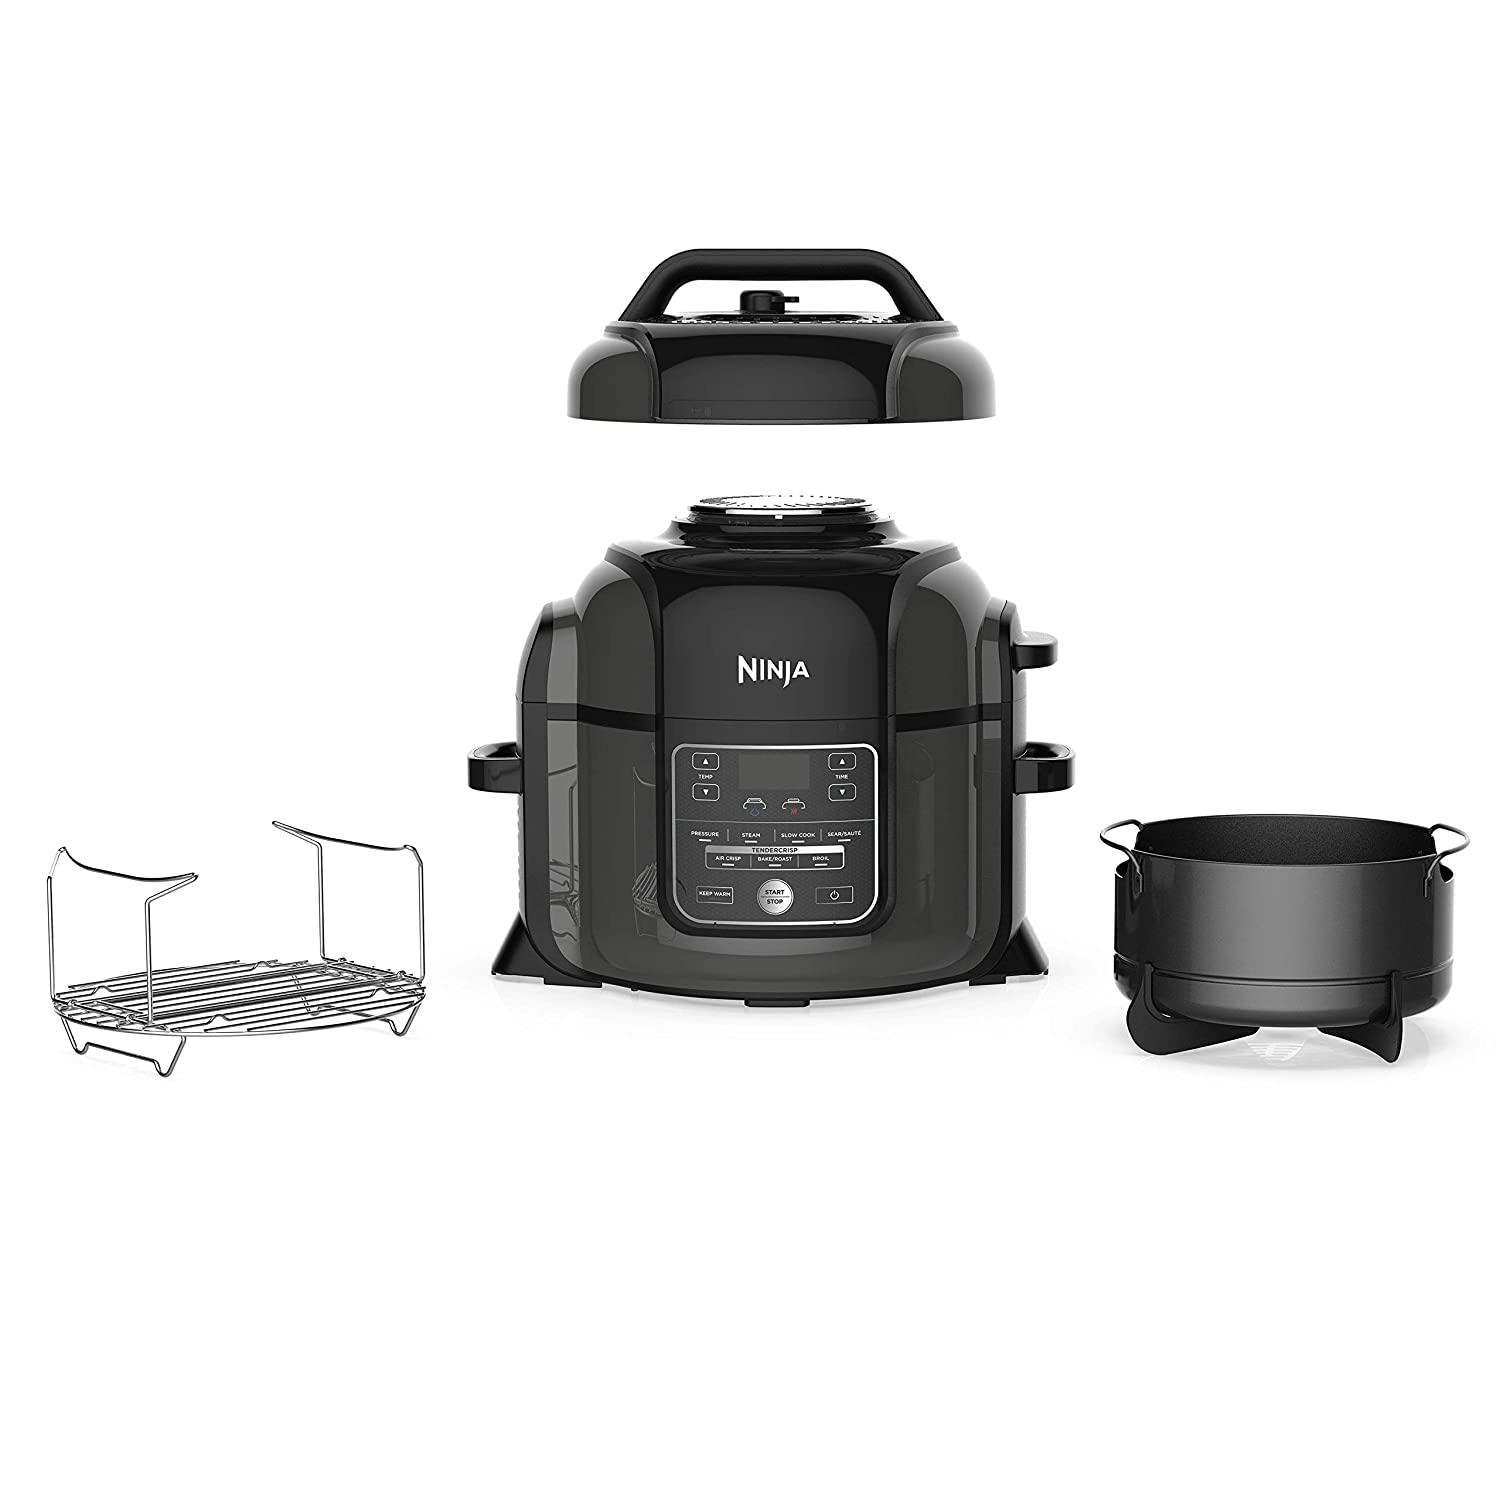 Ninja OP301 Pressure Cooker, Steamer & Air Fryer